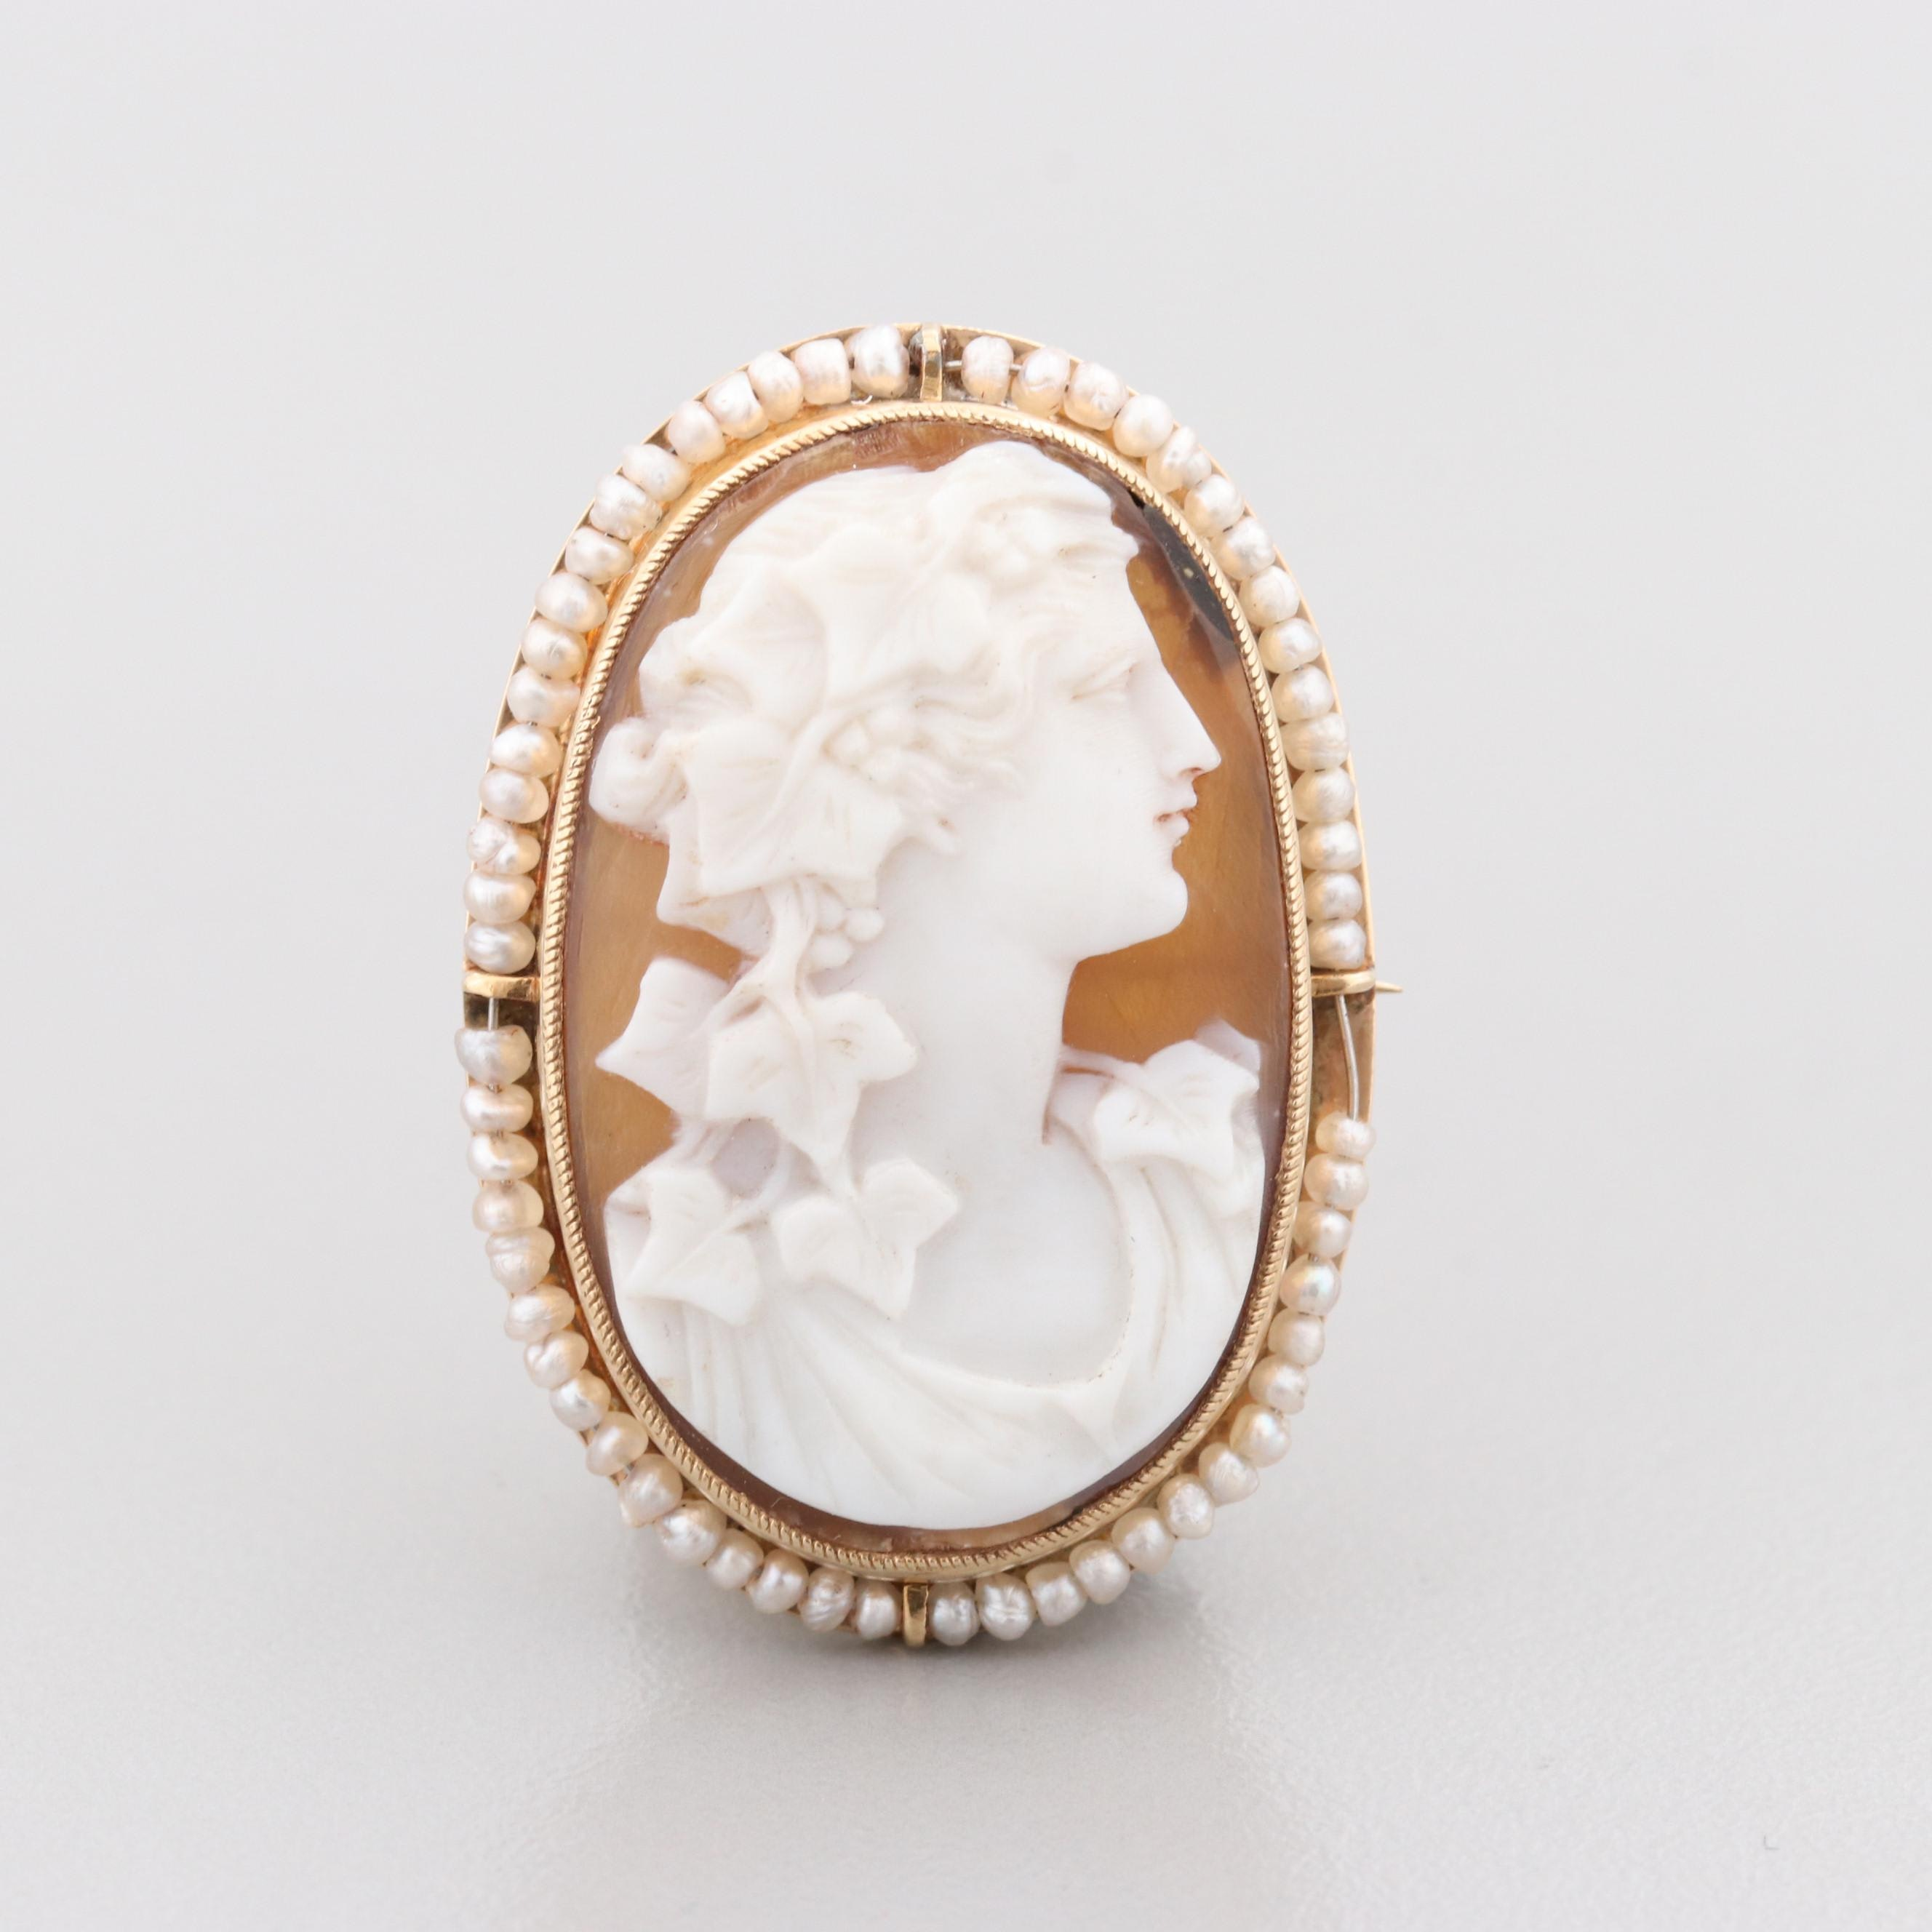 Vintage 14K Yellow Gold Sardonyx and Seed Pearl Cameo Brooch